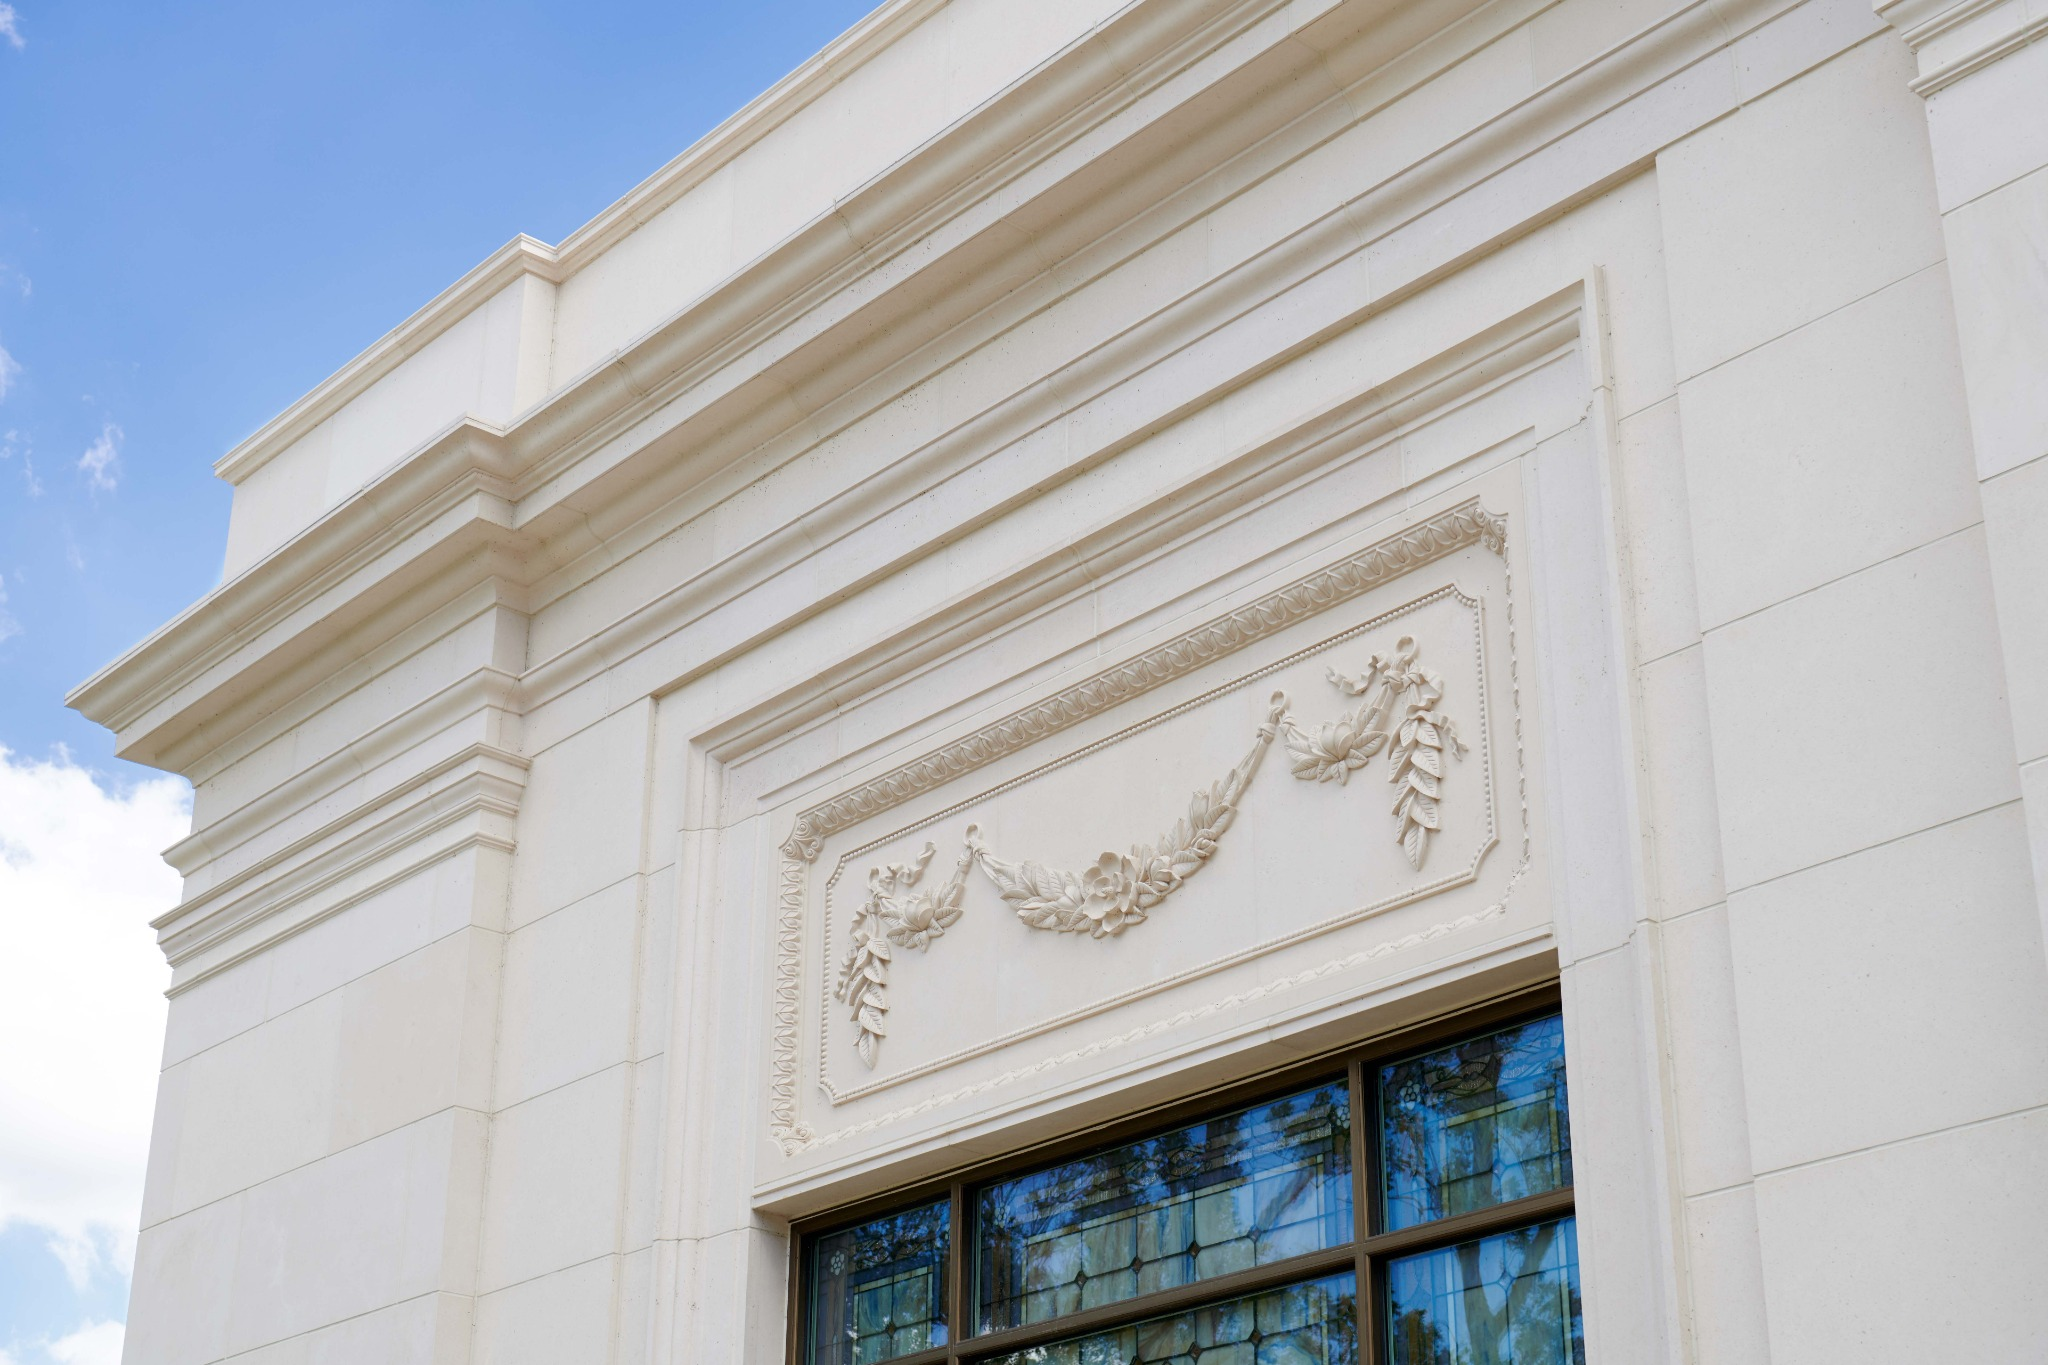 Detailed décor on the exterior of the Baton Rouge Louisiana Temple.